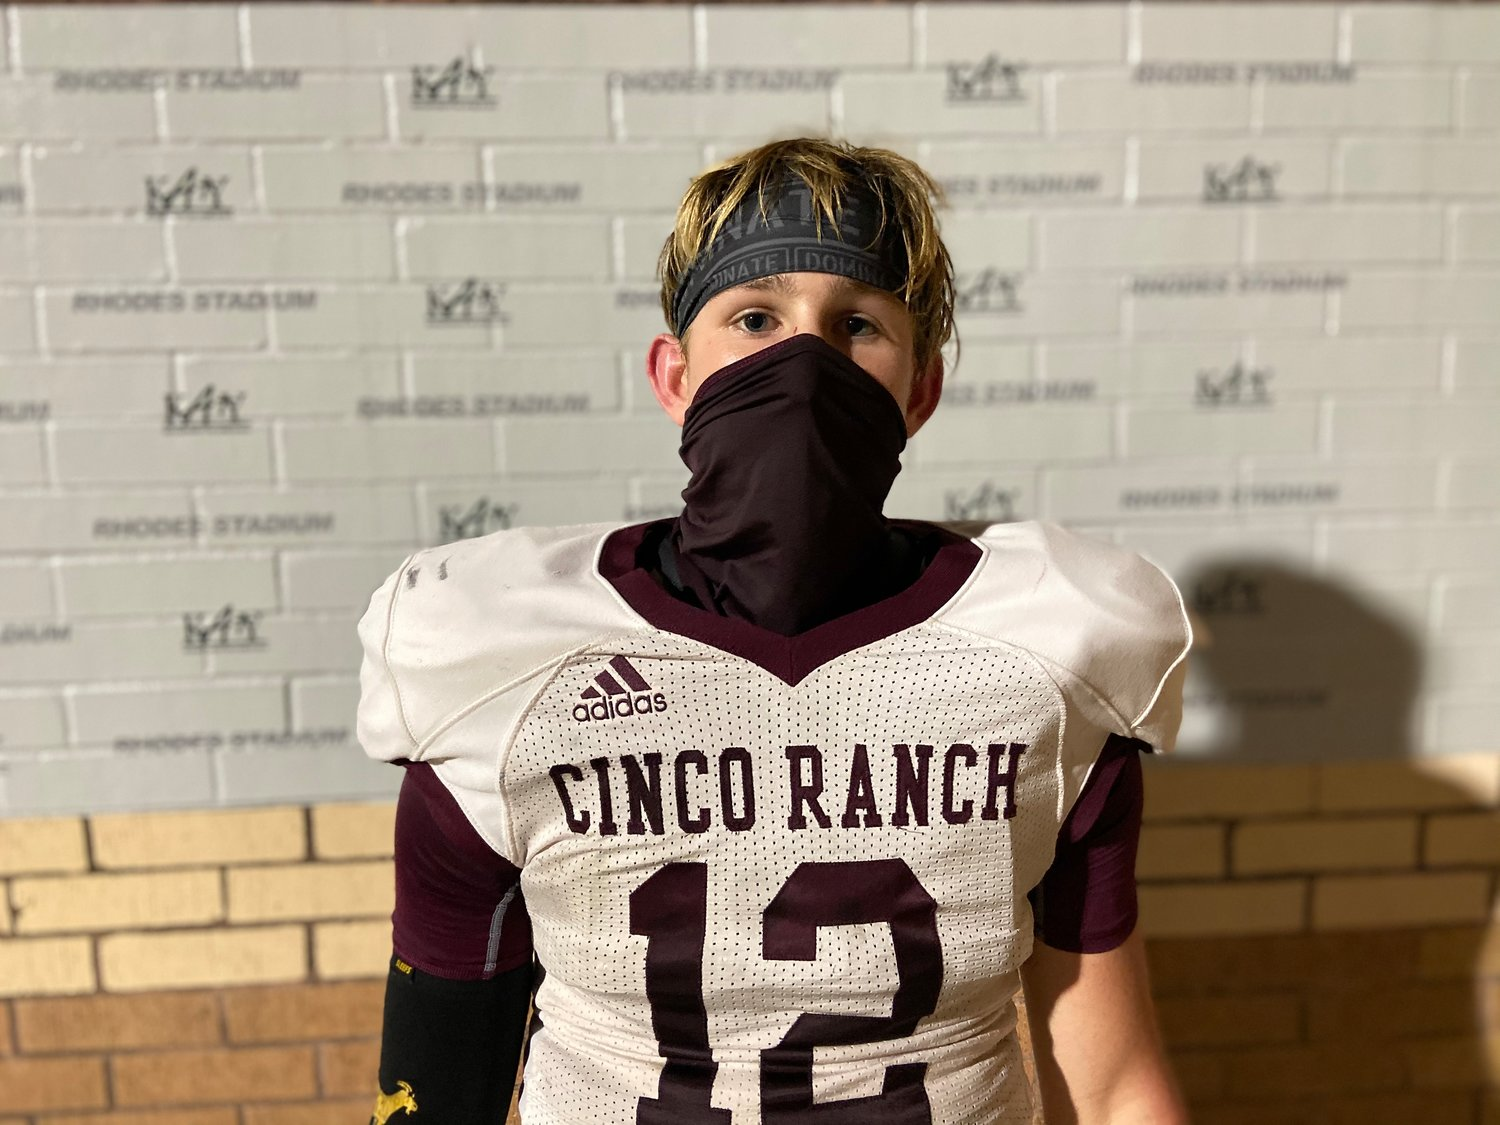 Cinco Ranch sophomore quarterback Gavin Rutherford threw for 200 yards and three touchdowns to help the Cougars snap a 14-game losing streak in beating Mayde Creek on Oct. 16 at Rhodes Stadium.